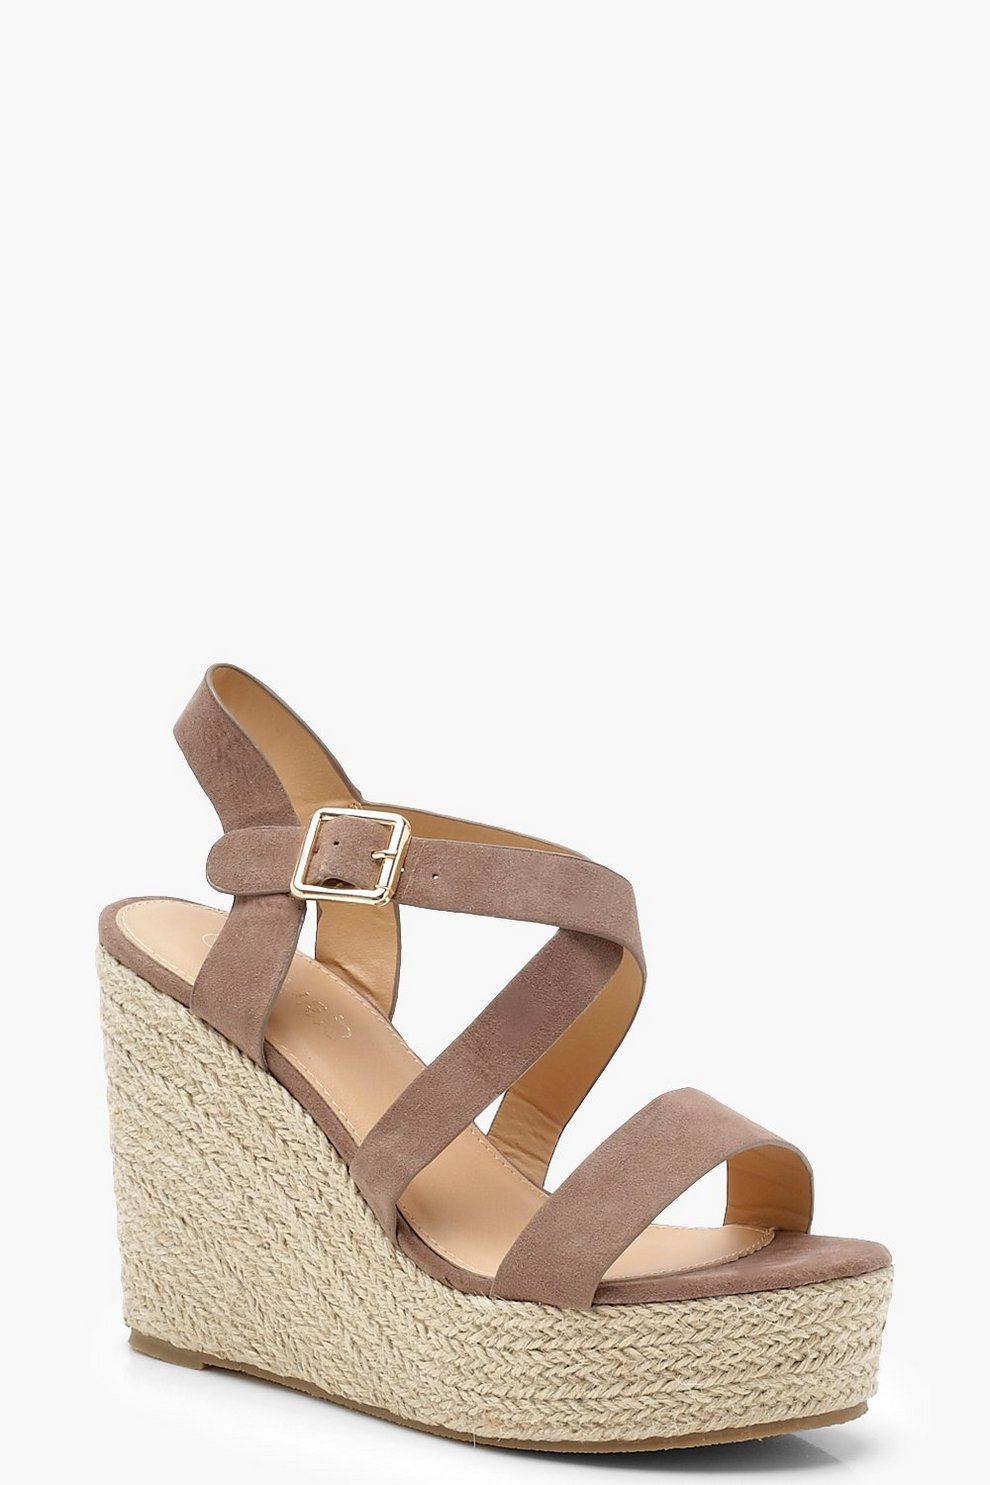 Strappy Espadrille Wedges | Boohoo